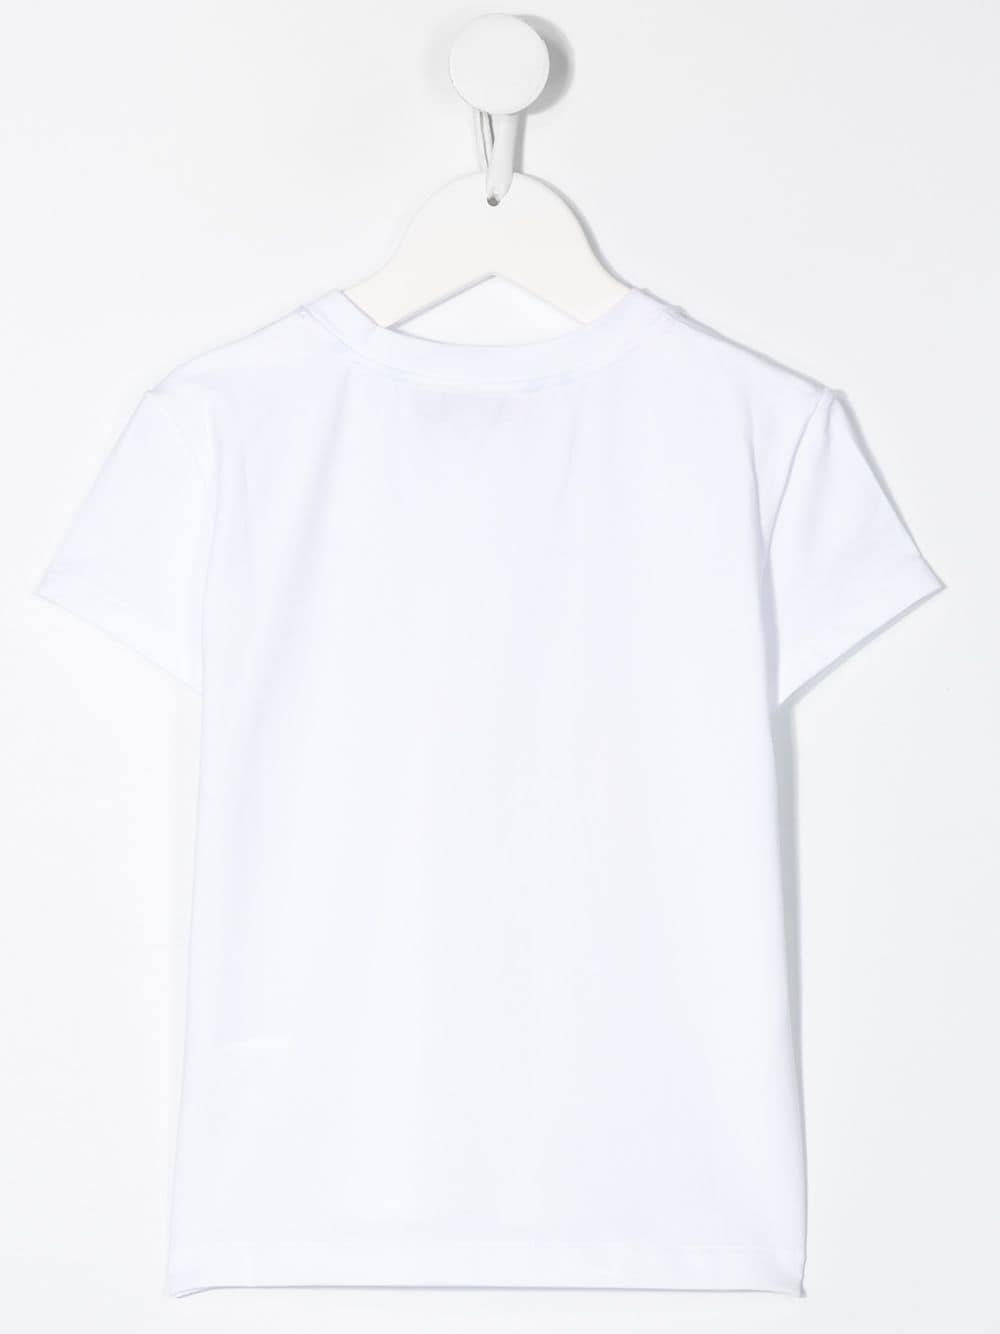 EMILIO PUCCI all over logo print t-shirt white - Maison De Fashion